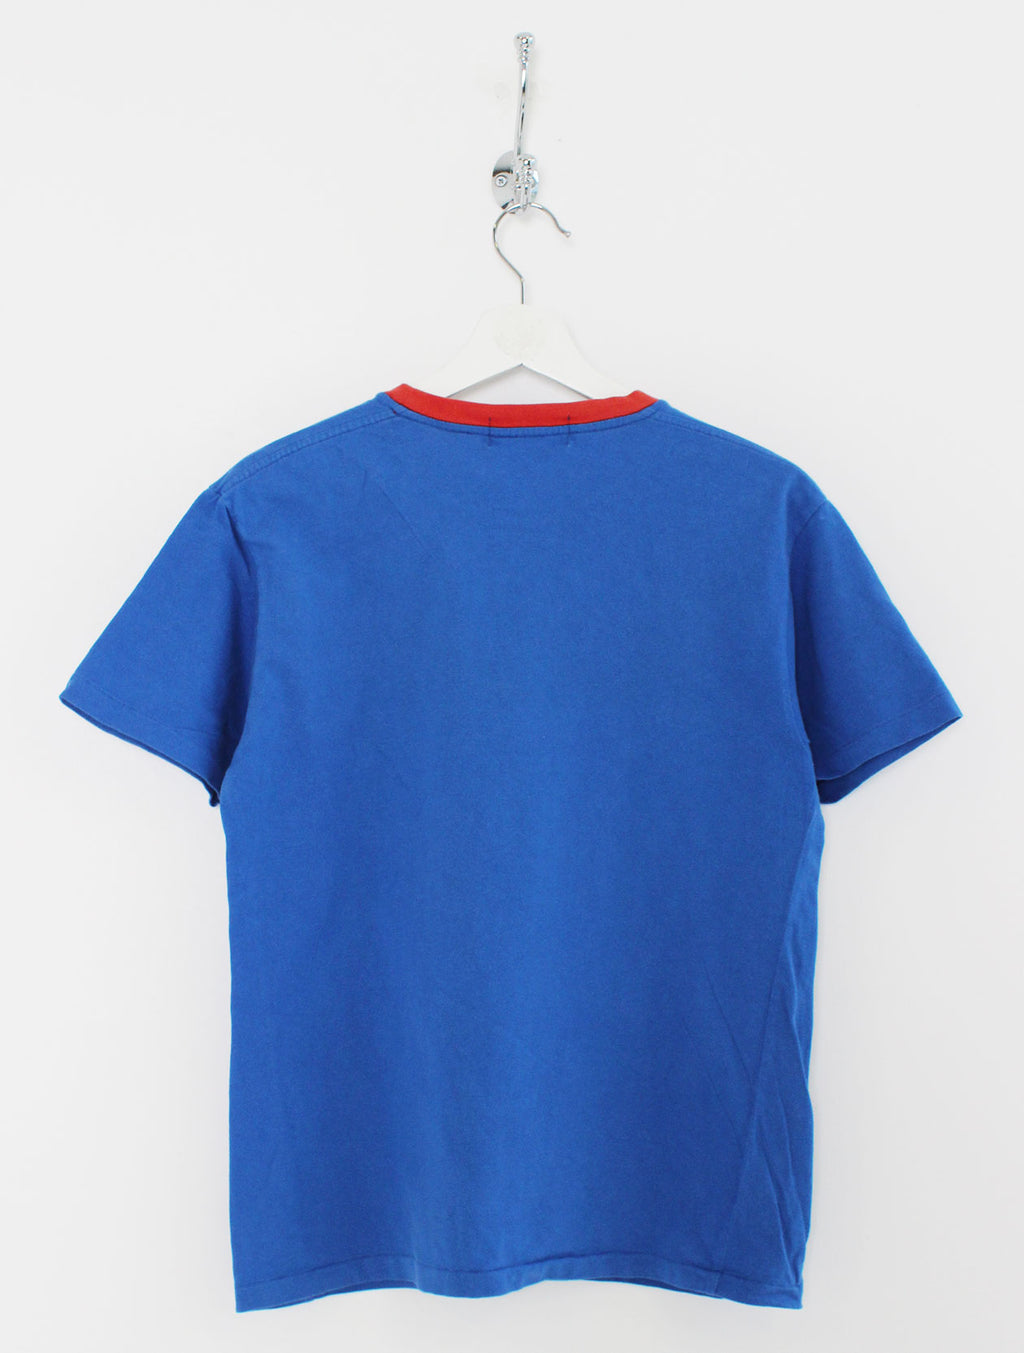 Women's Ralph Lauren Polo Sport T-Shirt (S)